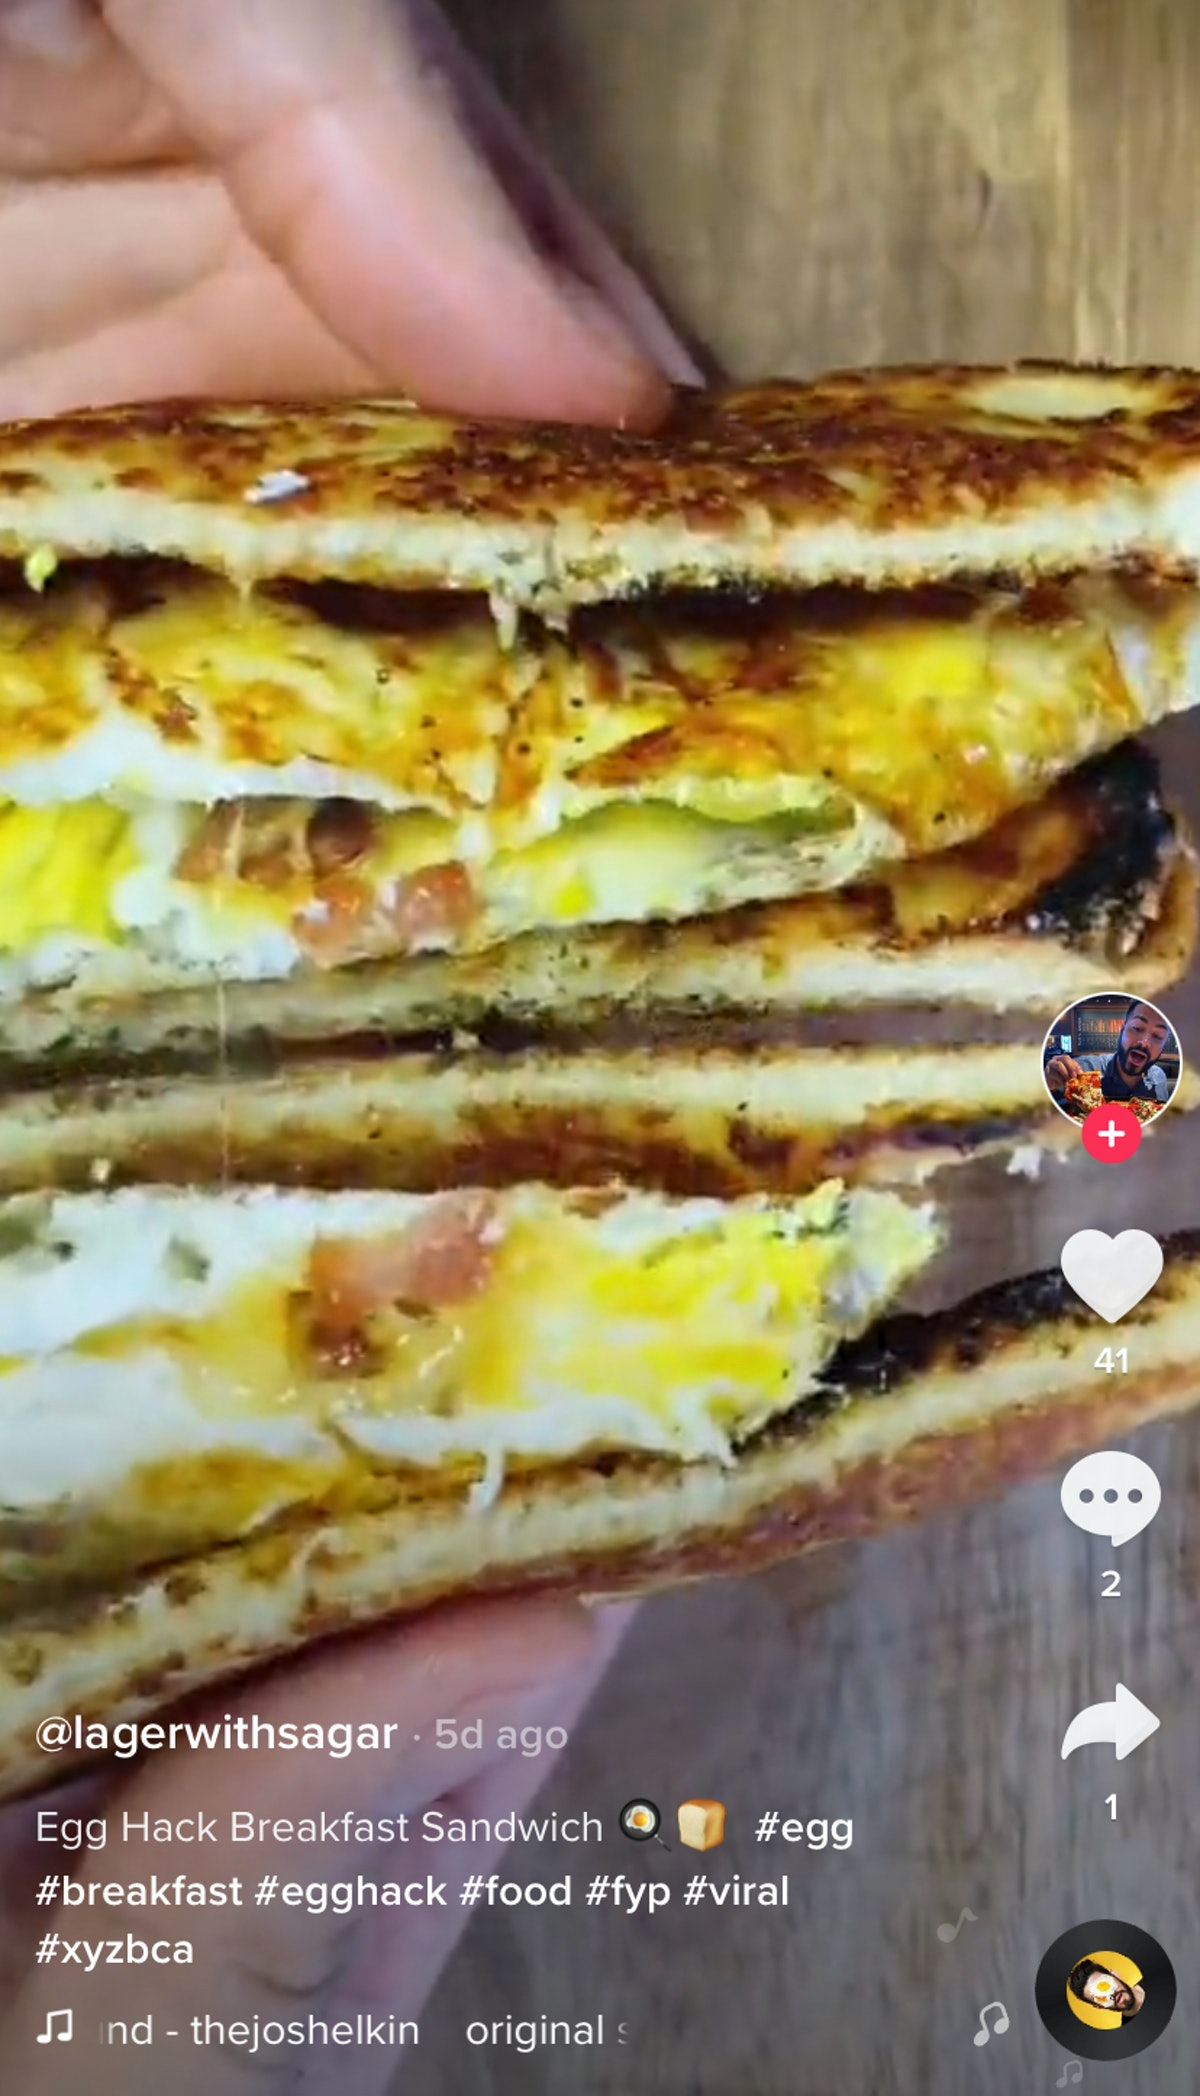 A man holds a egg hack breakfast sandwich from TikTok to show off the inside.